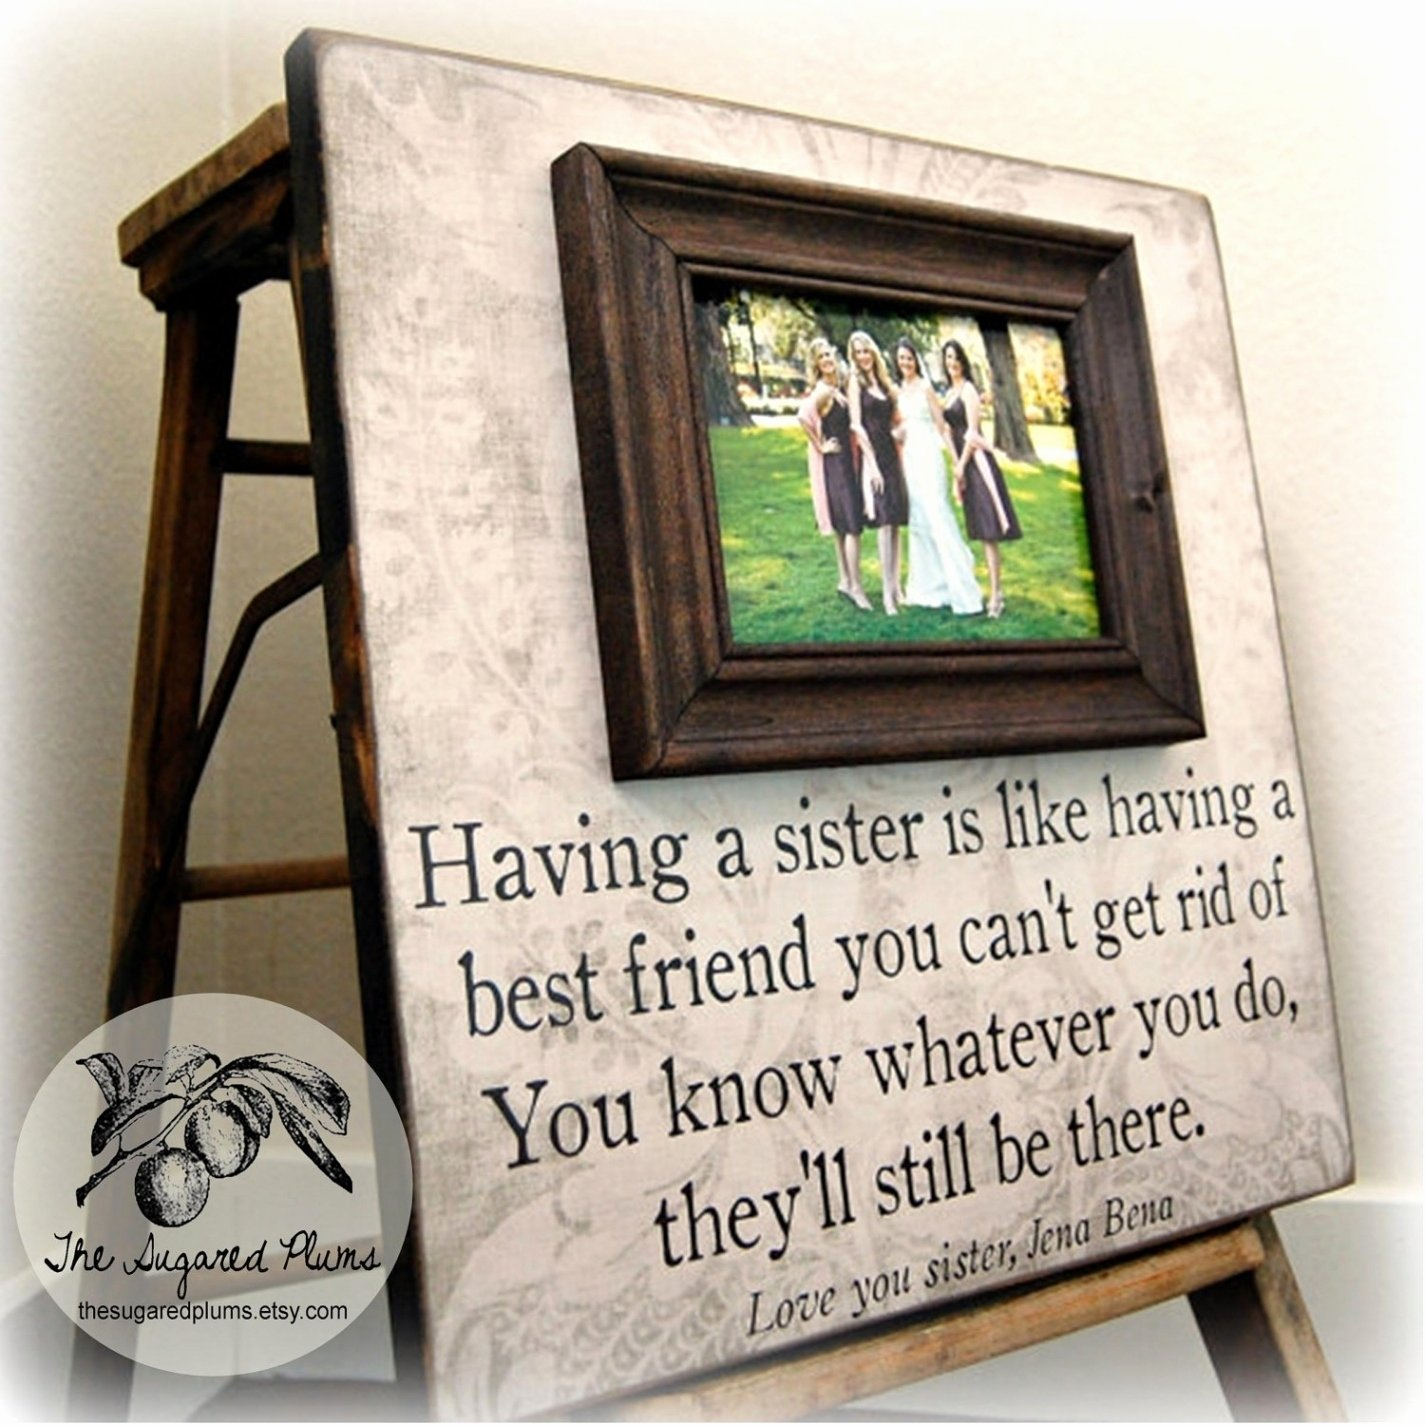 10 Most Recommended Wedding Gift Ideas For Sister 50 best of wedding gift ideas best friend wedding inspirations 1 2020